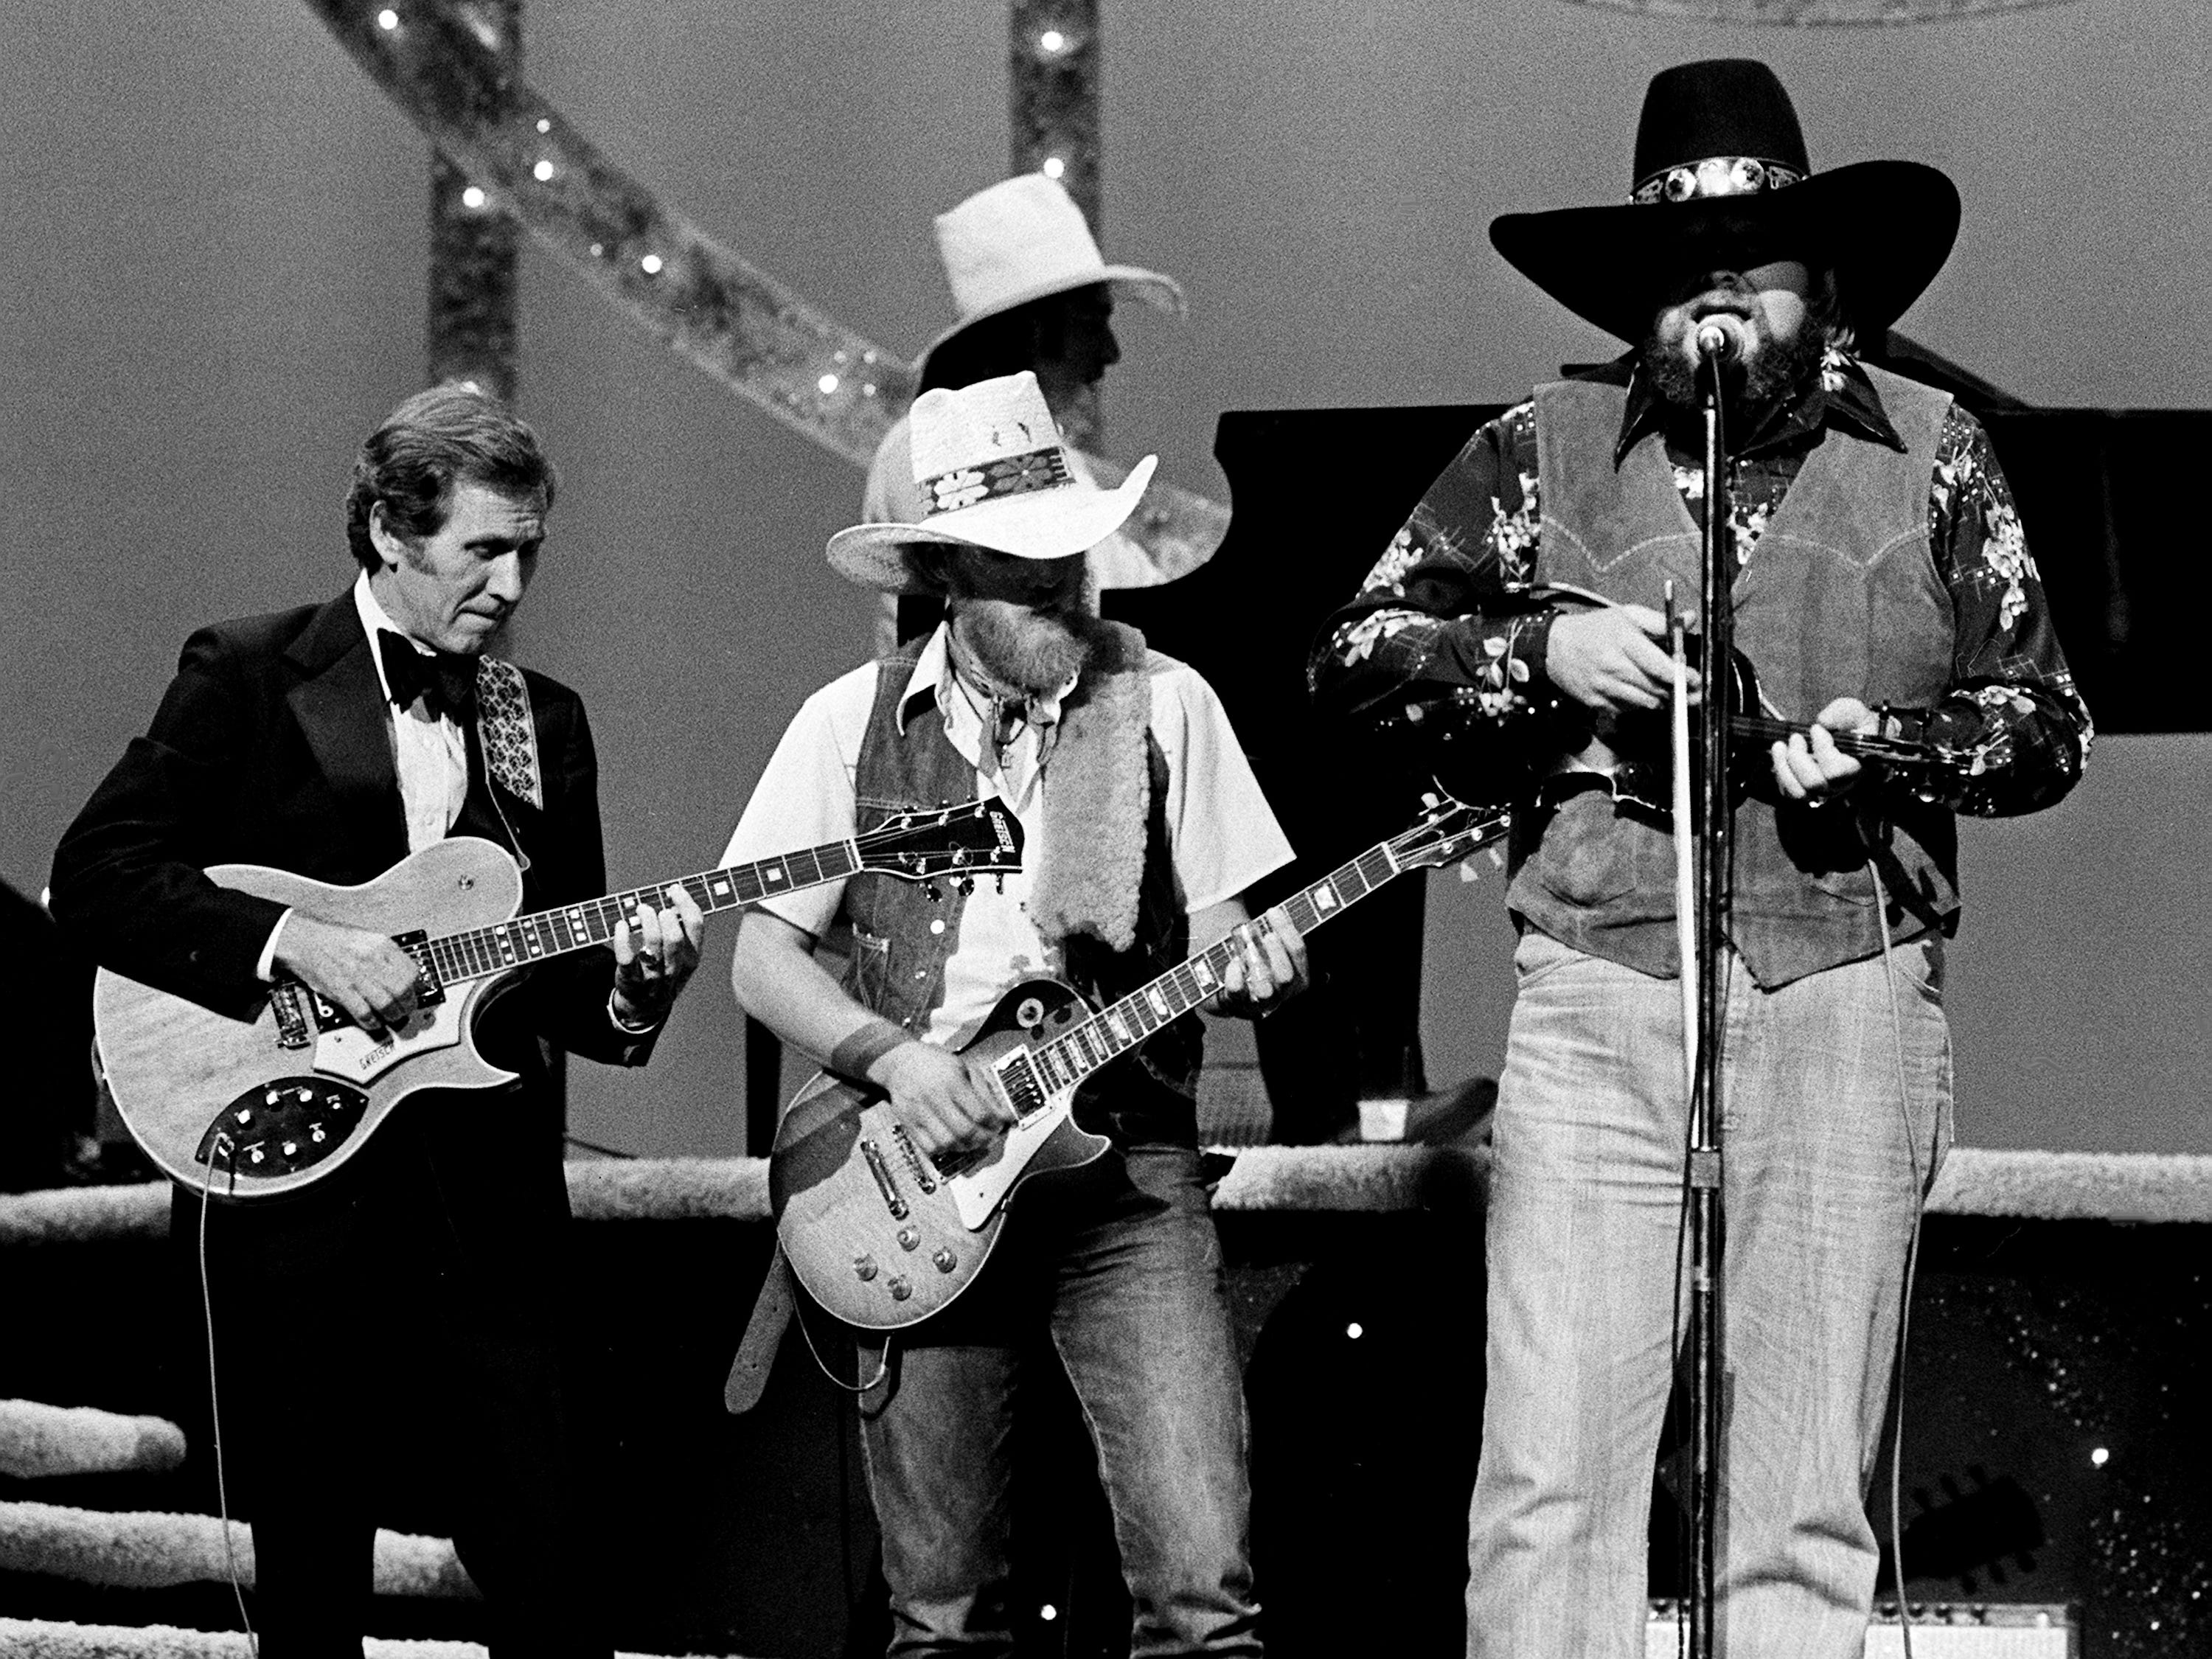 Chet Atkins, left, joins Charlie Daniels, right, and his band as they perform during the 12th annual CMA Awards show at the Grand Ole Opry House on Oct. 9, 1978.